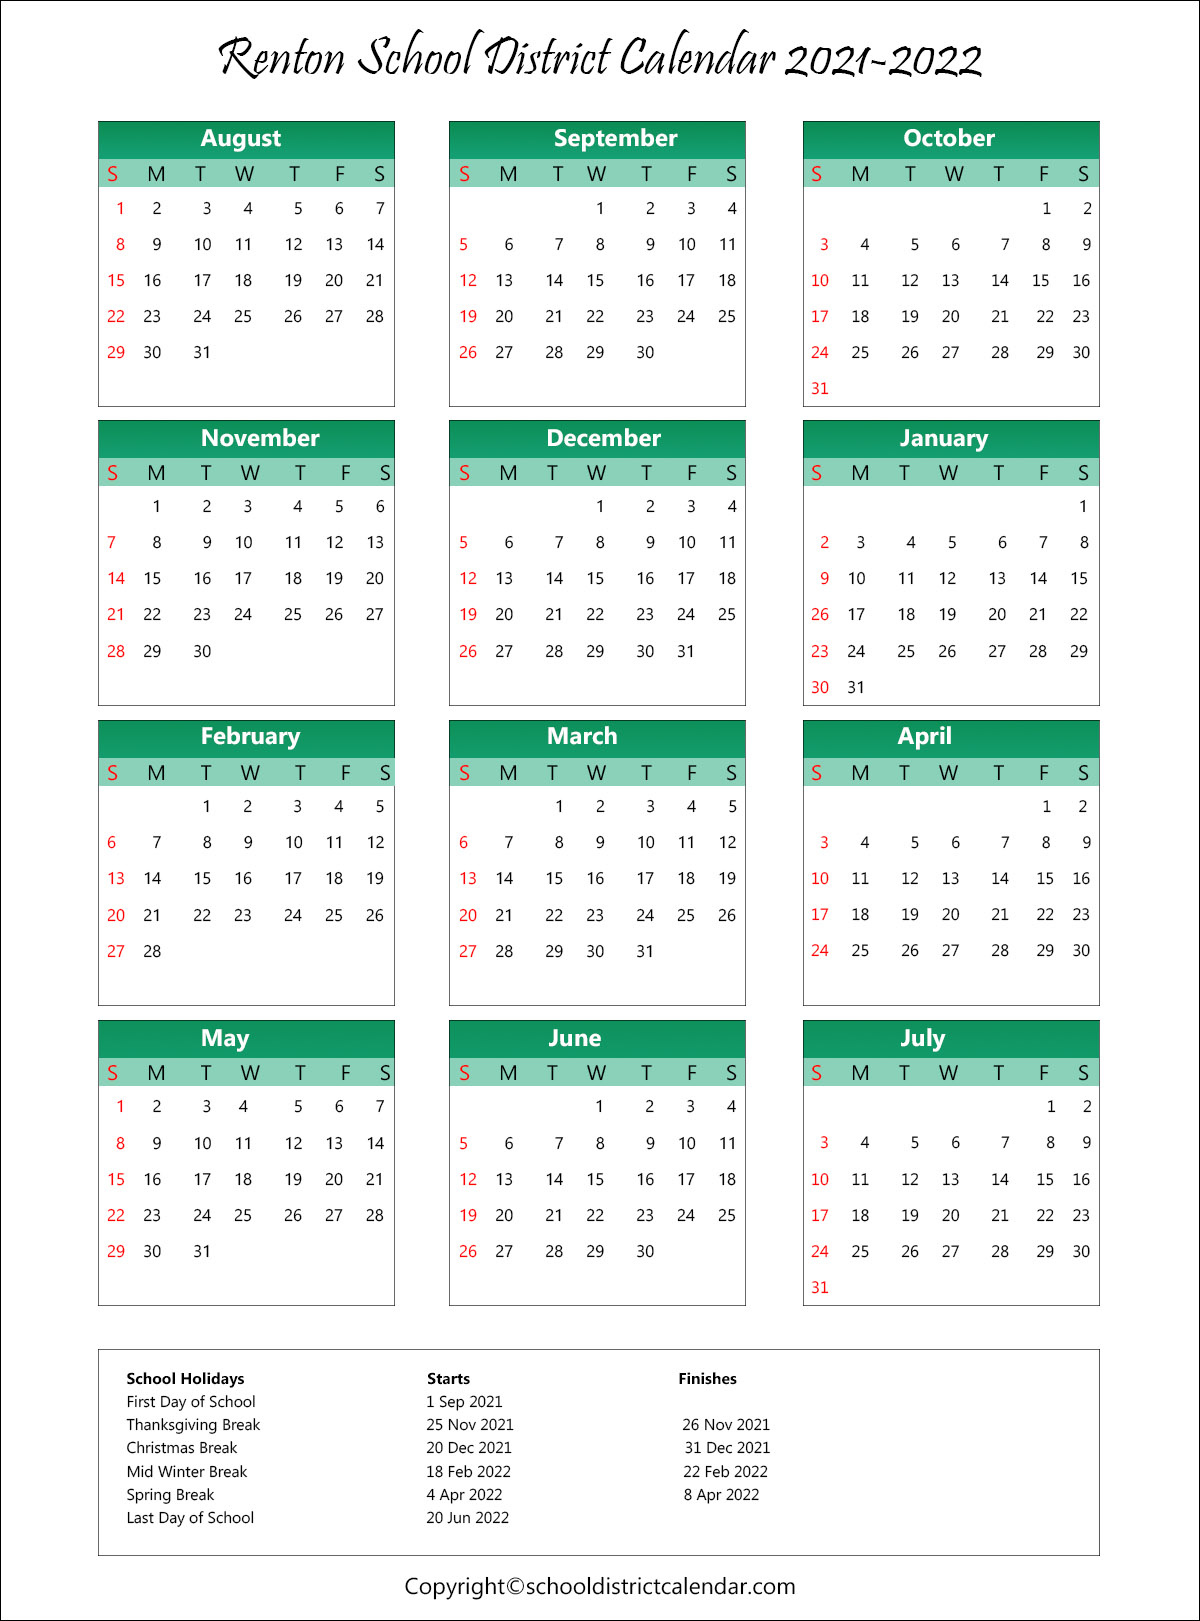 Kent School District Calendar 2021-22 Images